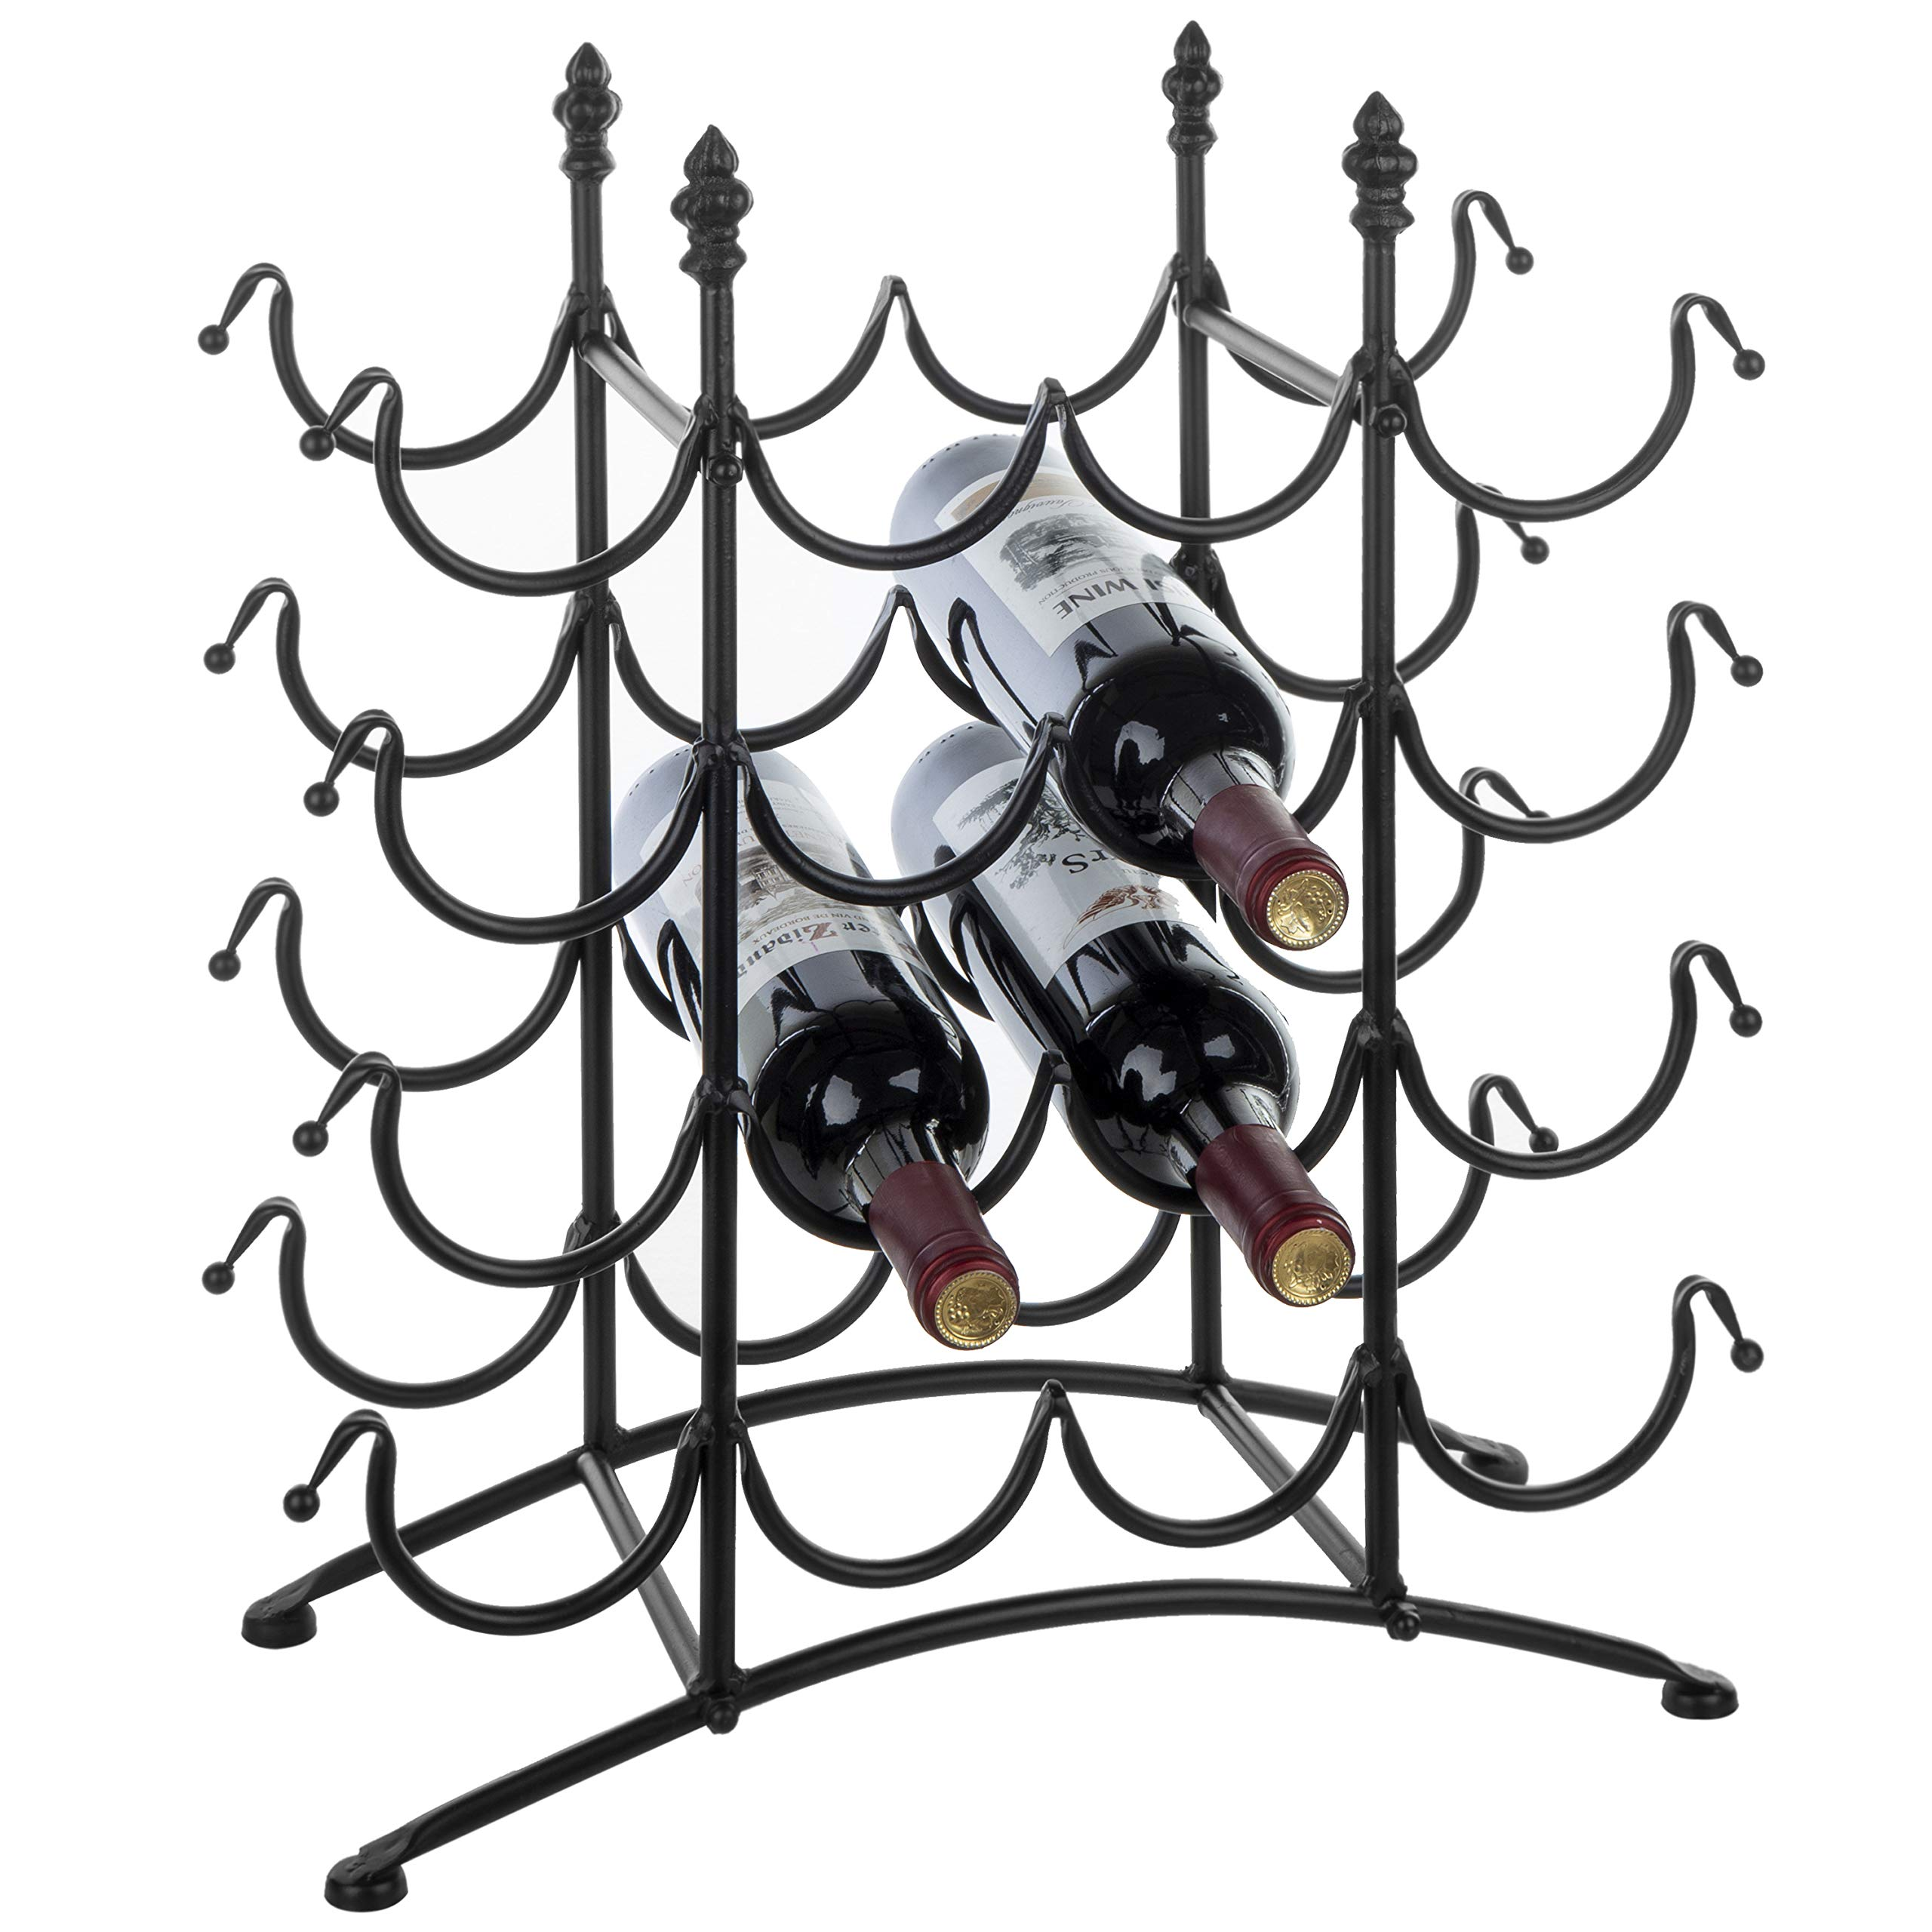 MyGift 16 Bottle French Country Black Metal Wine Display Rack/Freestanding Wine Storage Organizer